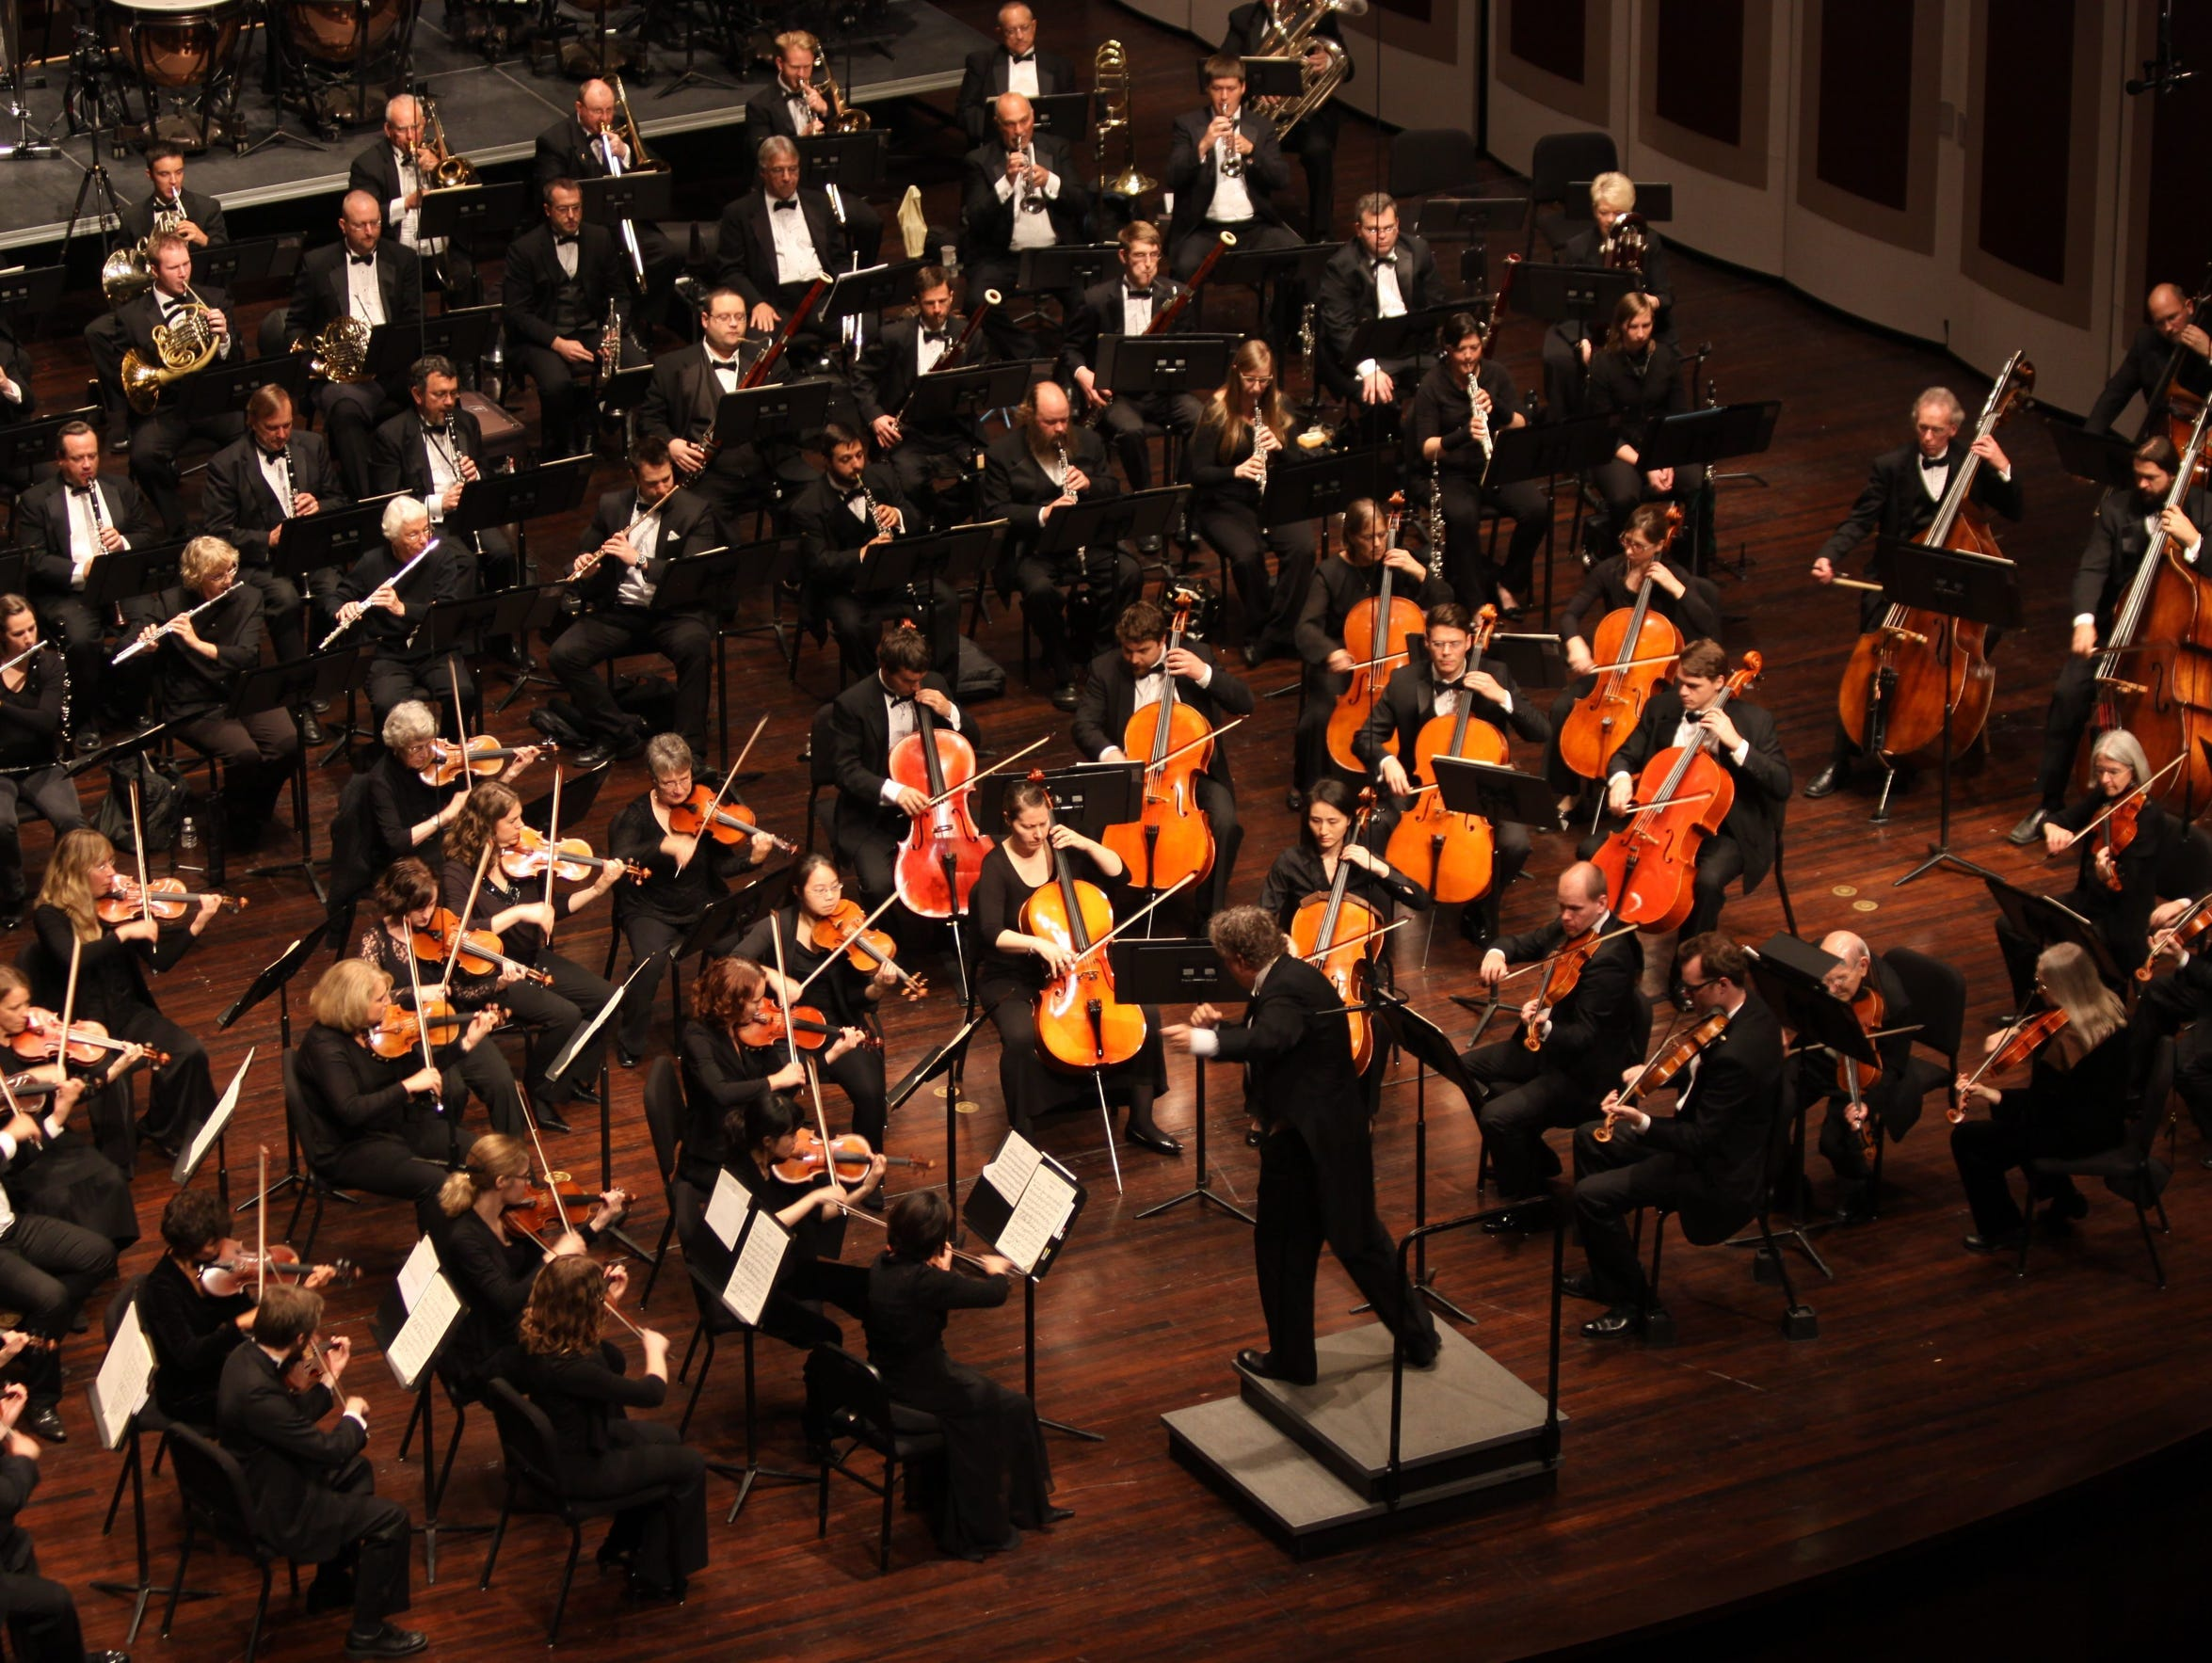 The South Dakota Symphony Orchestra infuses culture